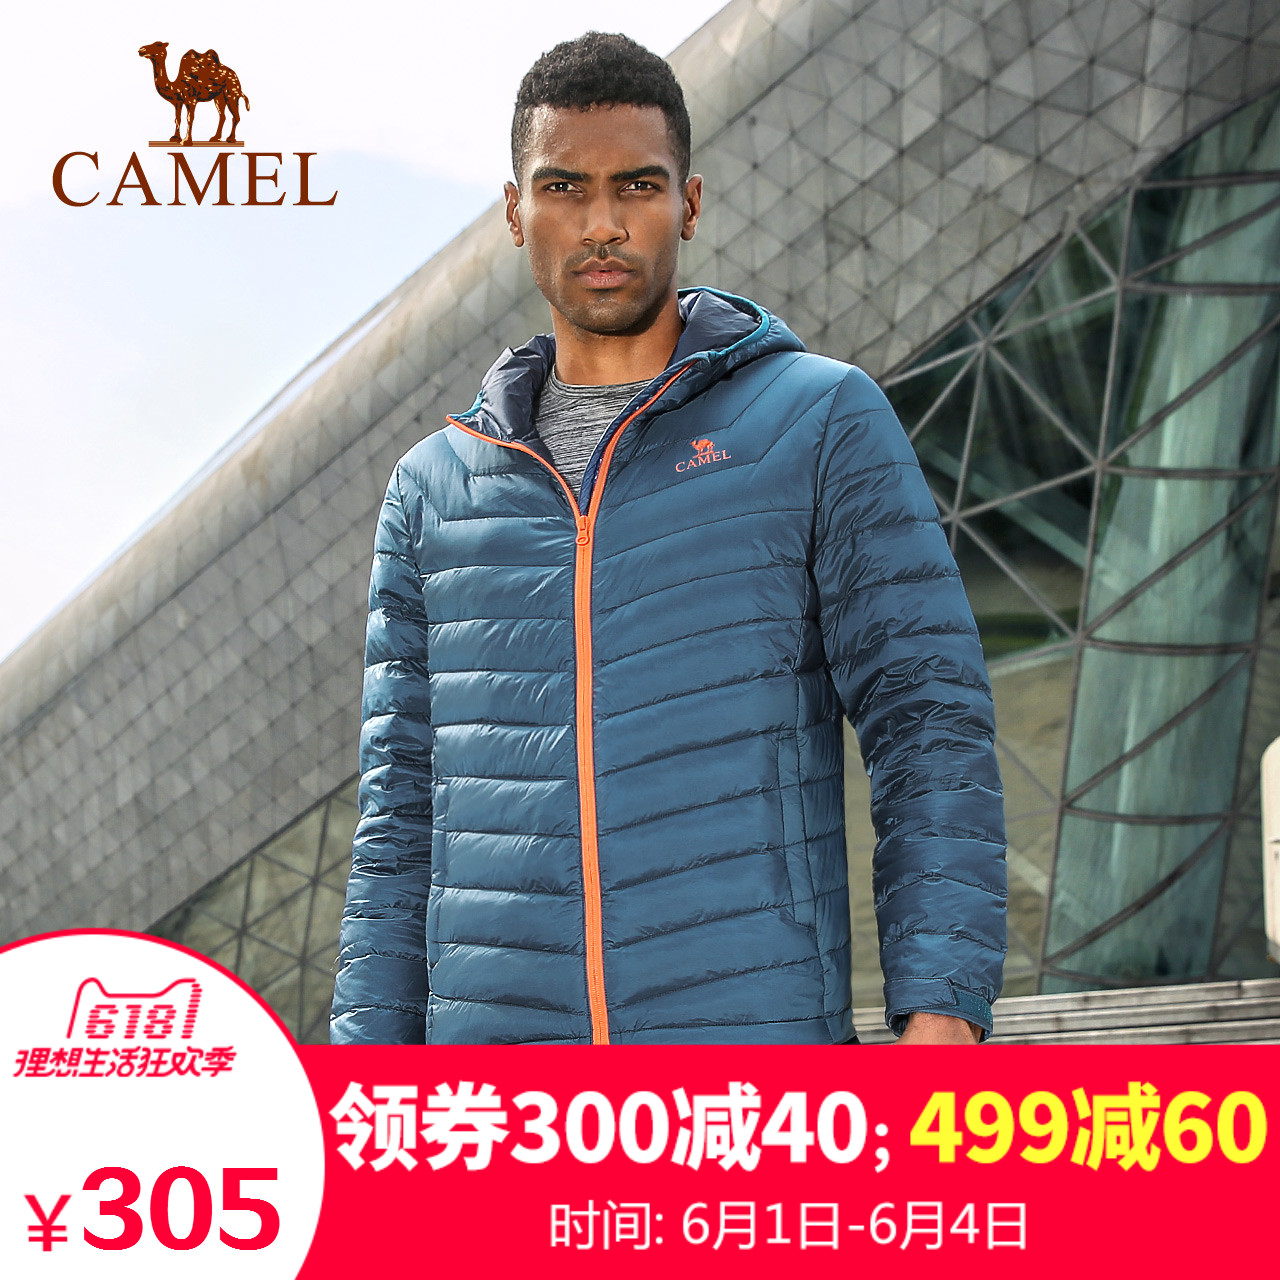 Camel outdoor sports men's down jacket personality casual wear elastic thin down jacket Camel outdoor sports men's down jacket personality casual wear elastic thin down jacket